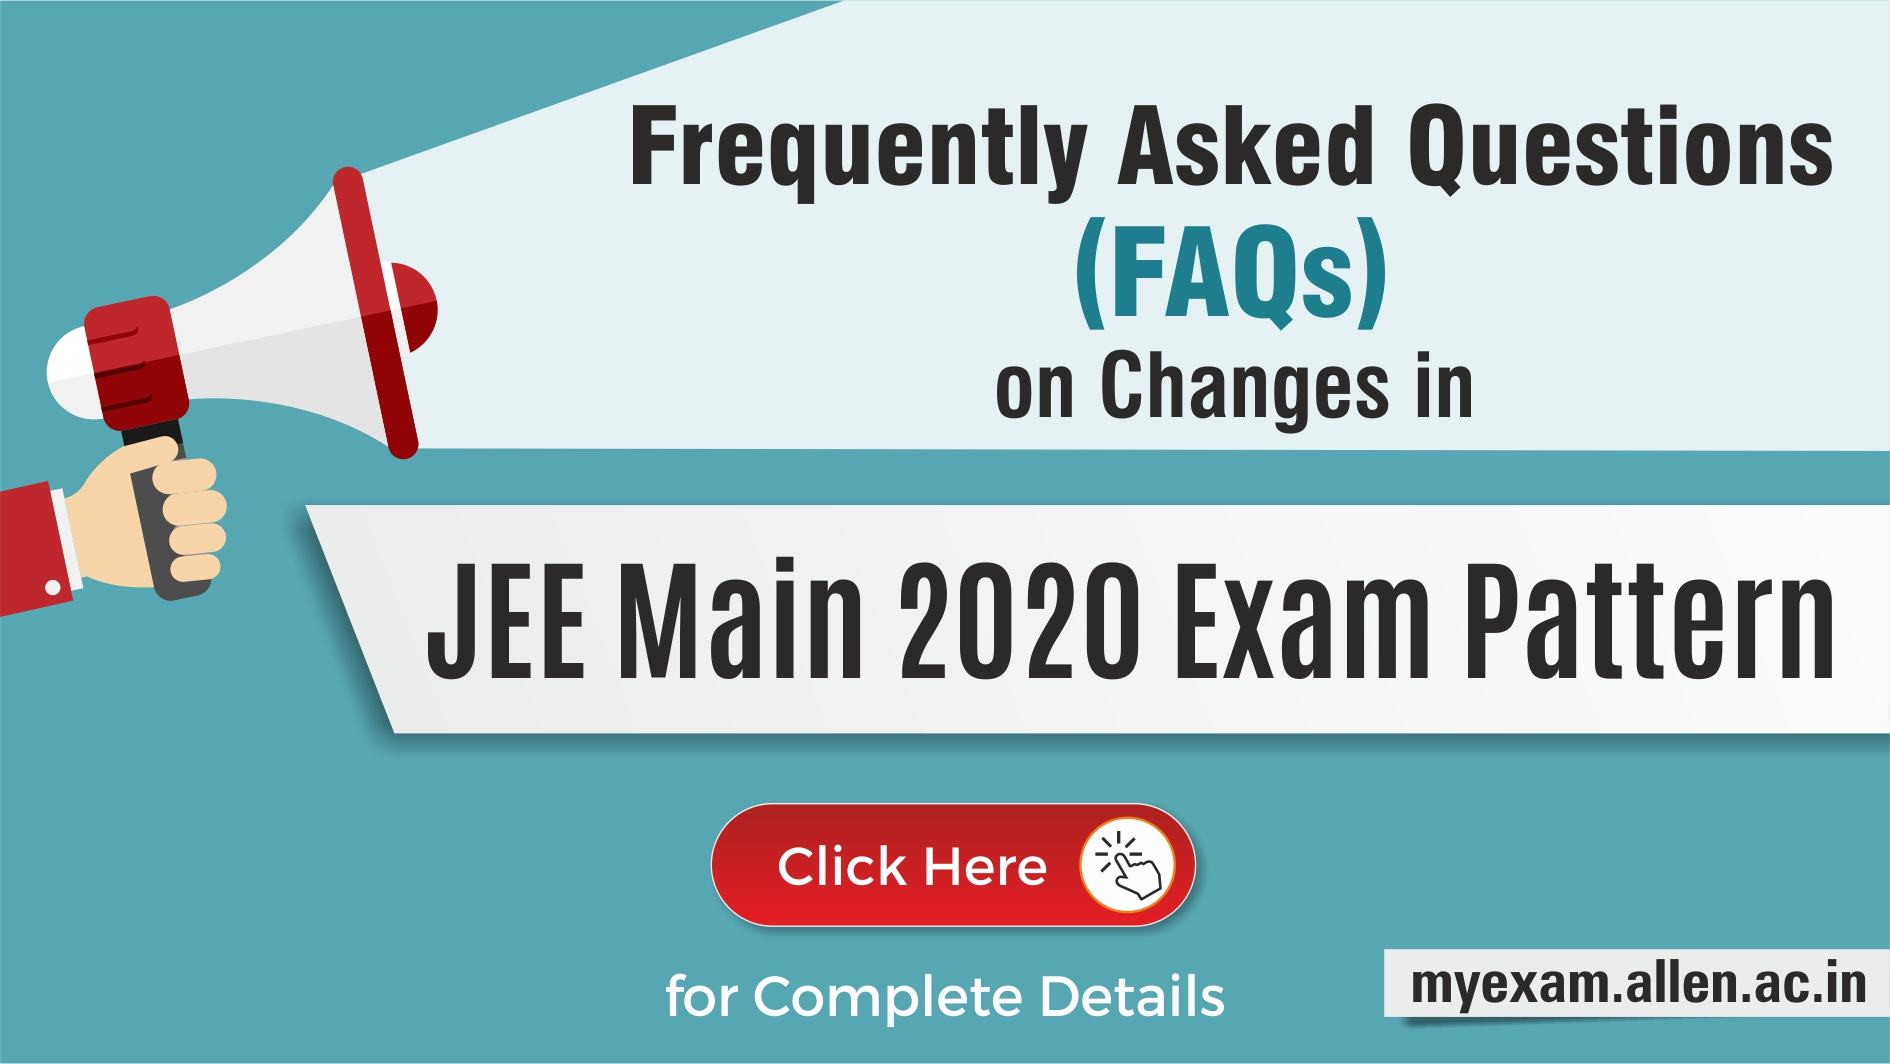 Changes in JEE Main 2020 Exam pattern